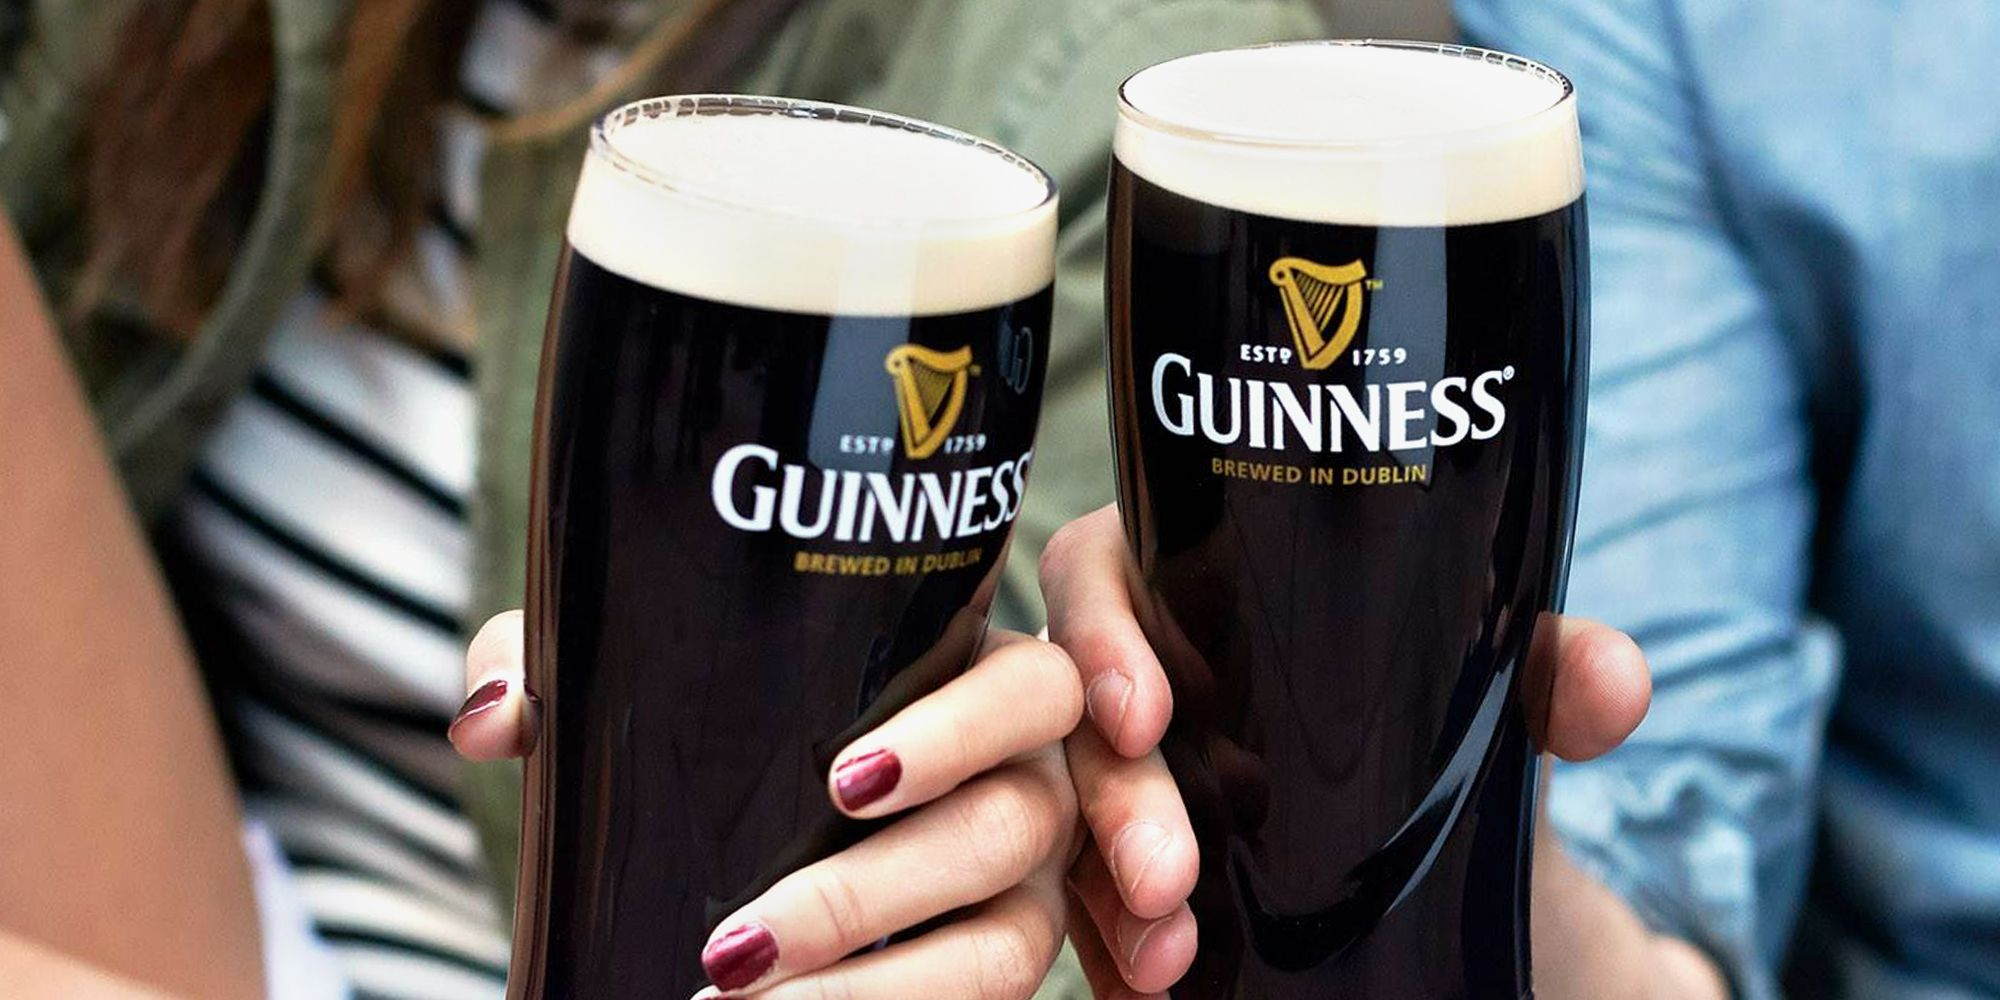 guinness products